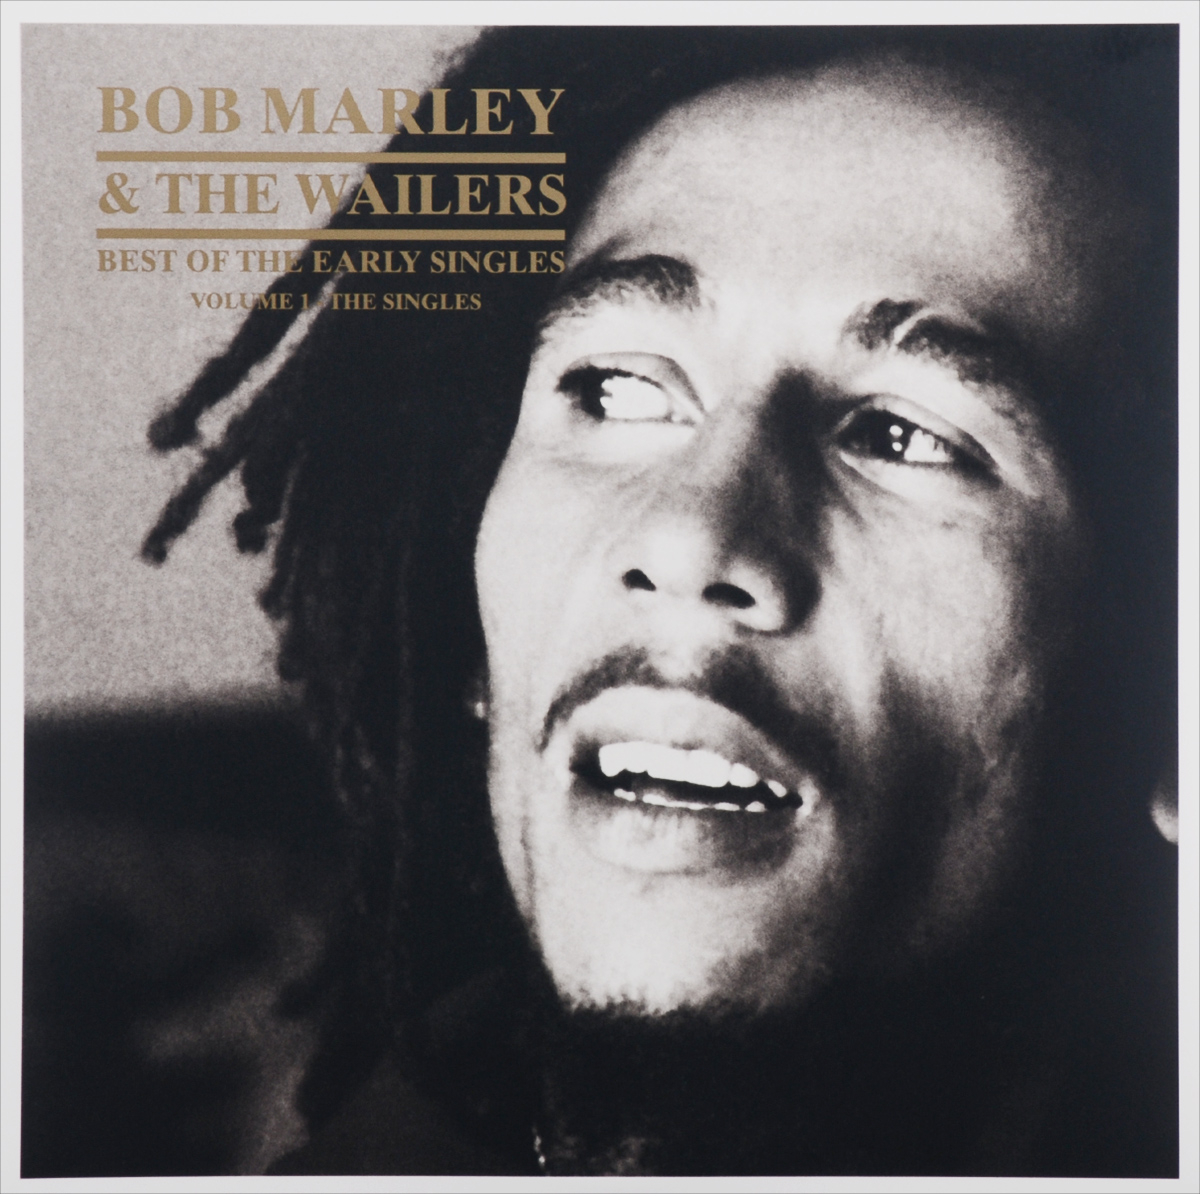 Боб Марли,The Wailers Bob Marley & The Wailers. Best Of The Early Singles. Volume 1 - The Singles (2 LP) phil collins singles 4 lp